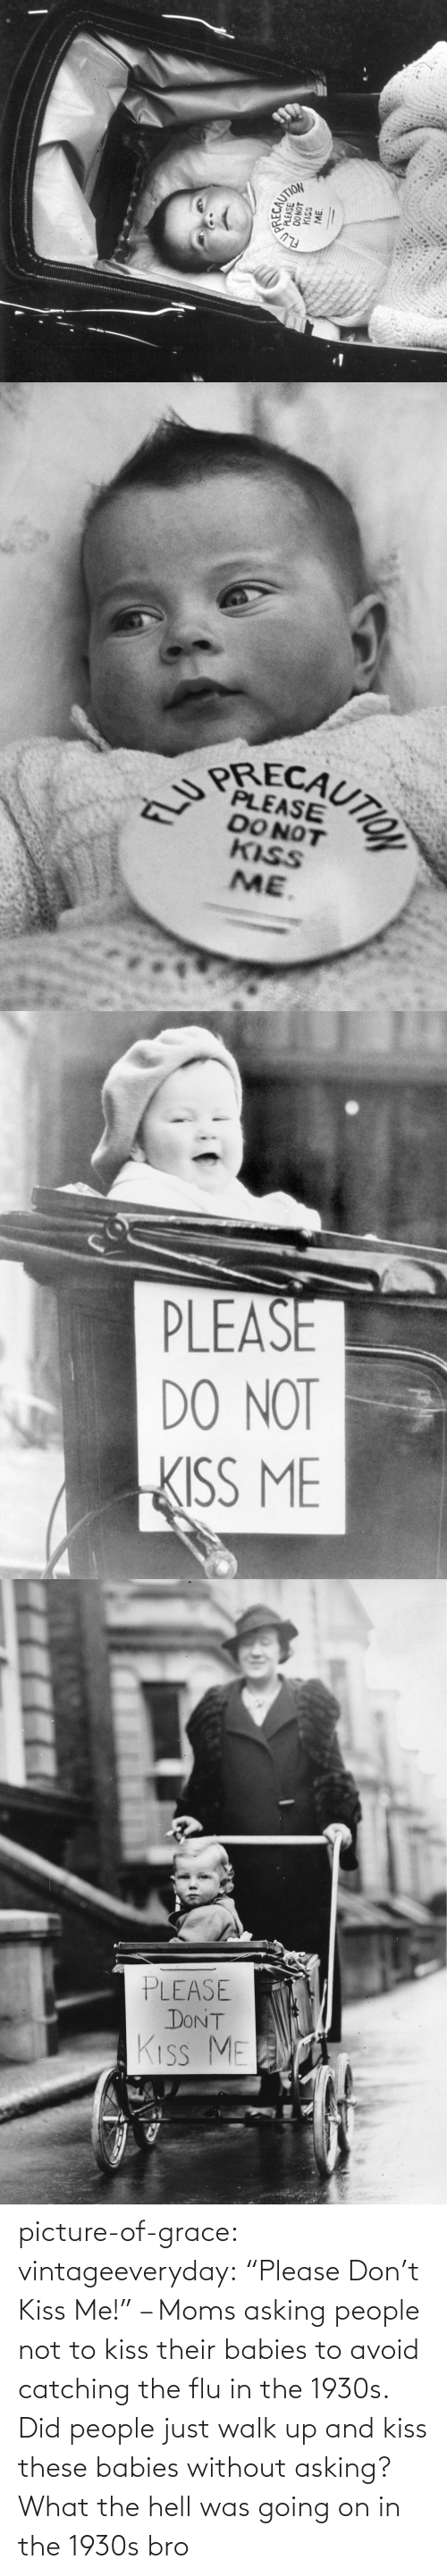 "The Hell: picture-of-grace:  vintageeveryday: ""Please Don't Kiss Me!"" – Moms asking people not to kiss their babies to avoid catching the flu in the 1930s.   Did people just walk up and kiss these babies without asking? What the hell was going on in the 1930s bro"